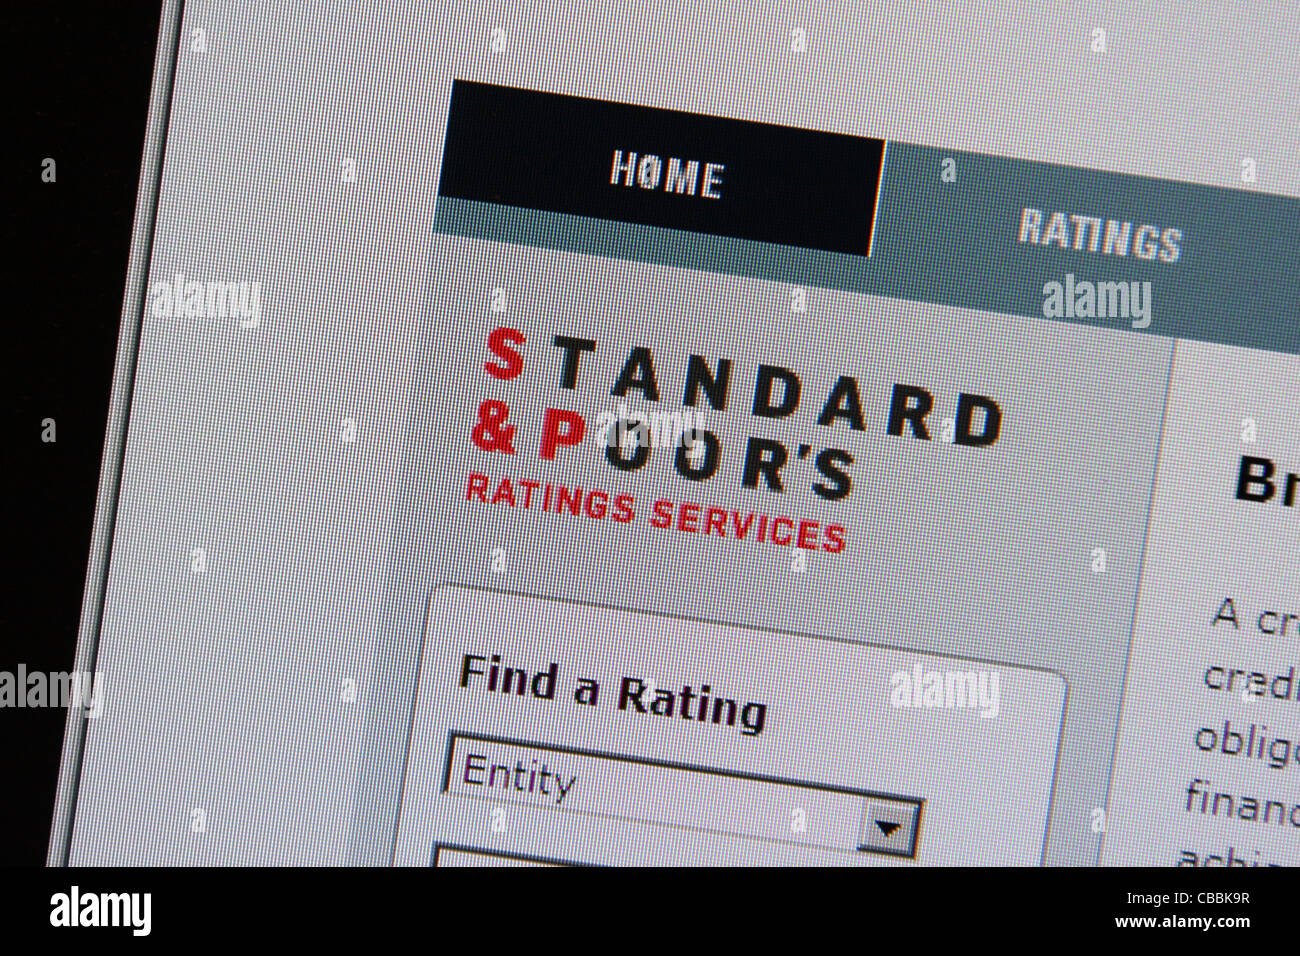 Standards & Poor's 'standard and poors' s&p - Stock Image